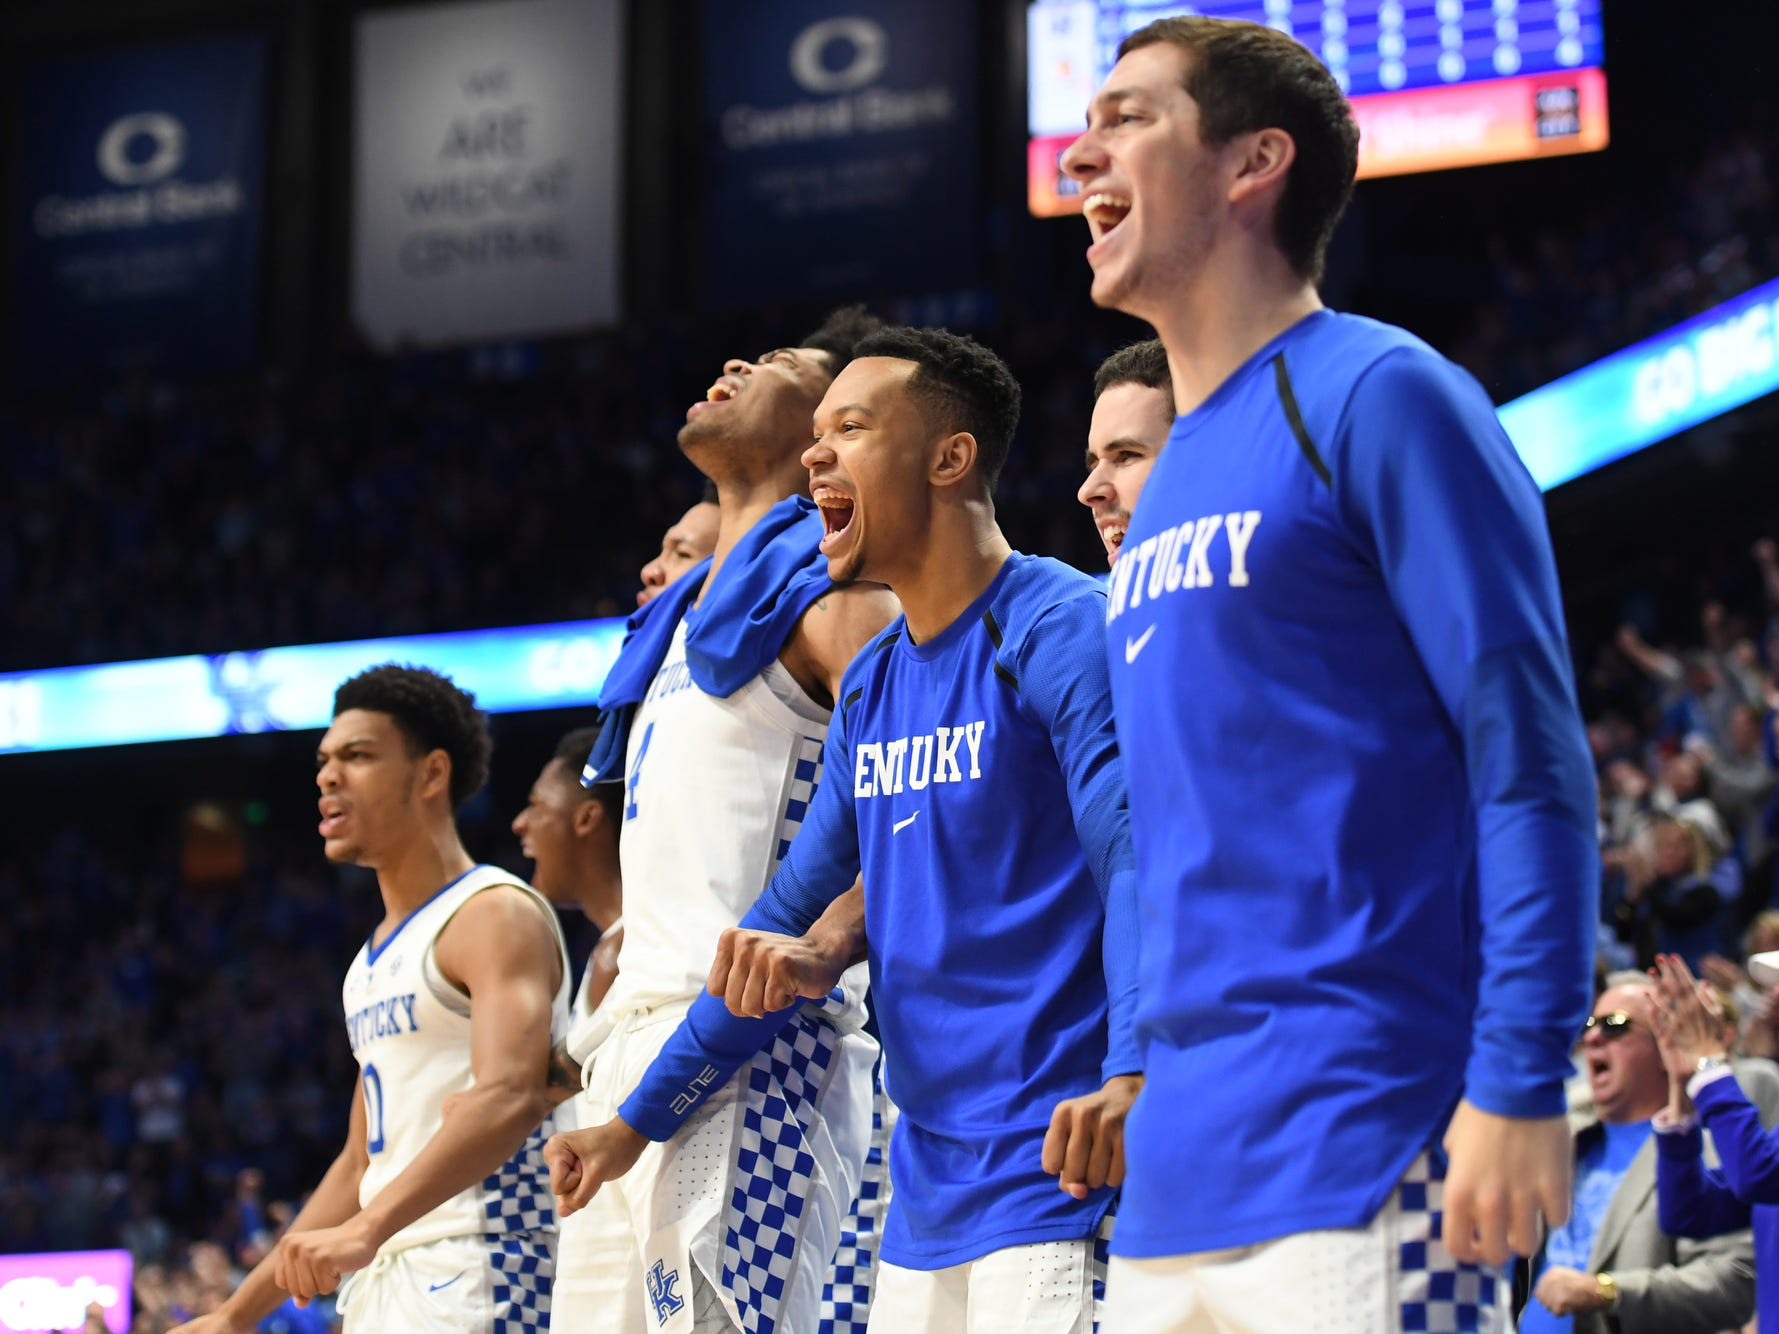 UK bench celebrates during the University of Kentucky men's basketball game against UNC Greensboro at Rupp Arena in Lexington, Kentucky on Saturday, December 1, 2018.